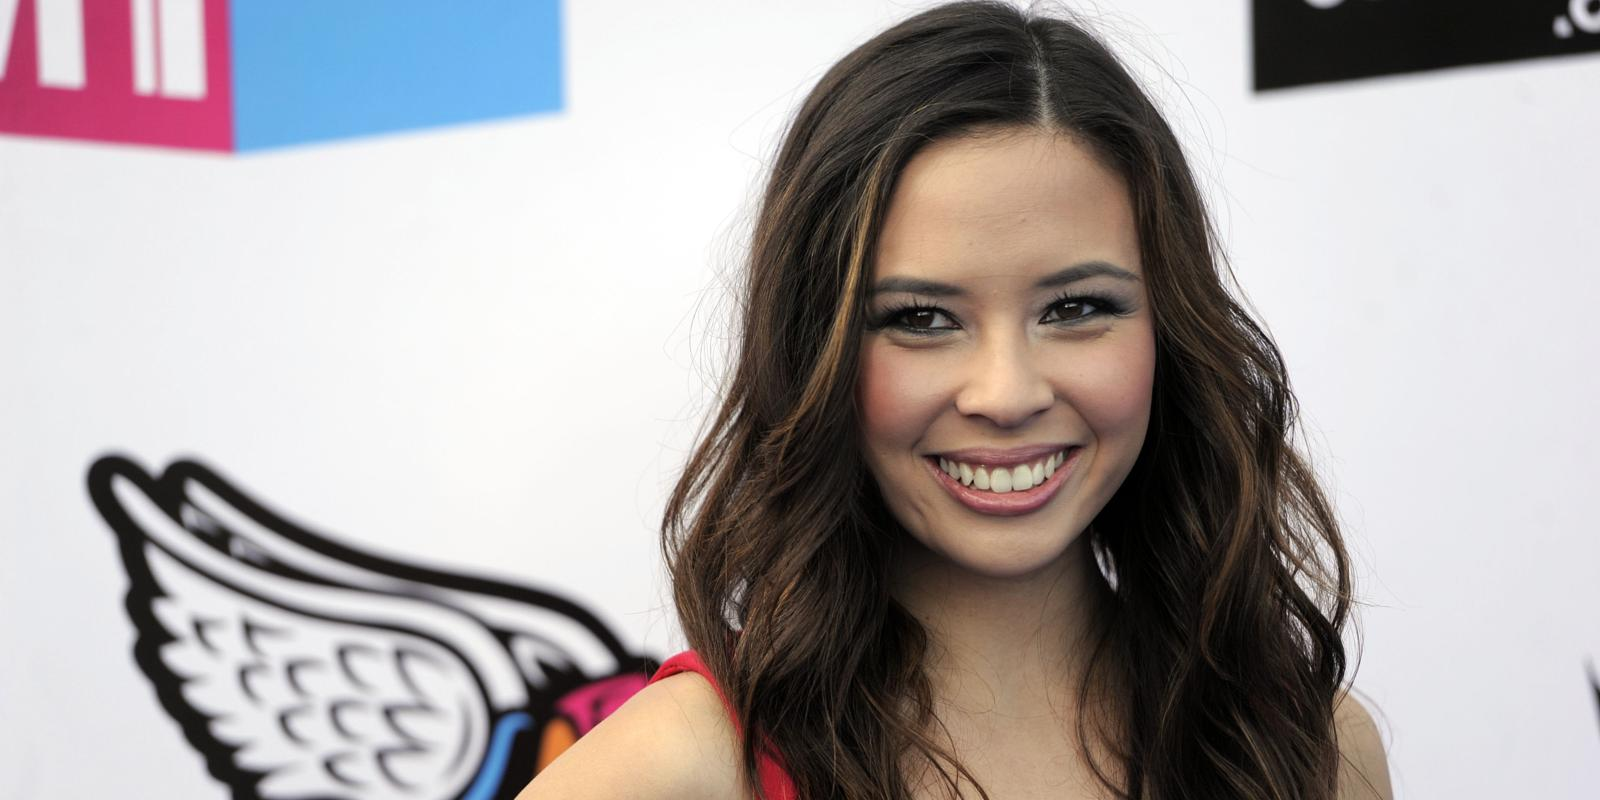 malese jow facebookmalese jow insta, malese jow age, malese jow gif hunt, malese jow and steven r mcqueen, malese jow height, malese jow wiki, malese jow photoshoot, malese jow facebook, malese jow wdw, malese jow filmography, malese jow vampire diaries, malese jow birthday, malese jow and kendall schmidt, malese jow vk, malese jow instagram, malese jow tumblr, malese jow big time rush, malese jow movies, malese jow eye color